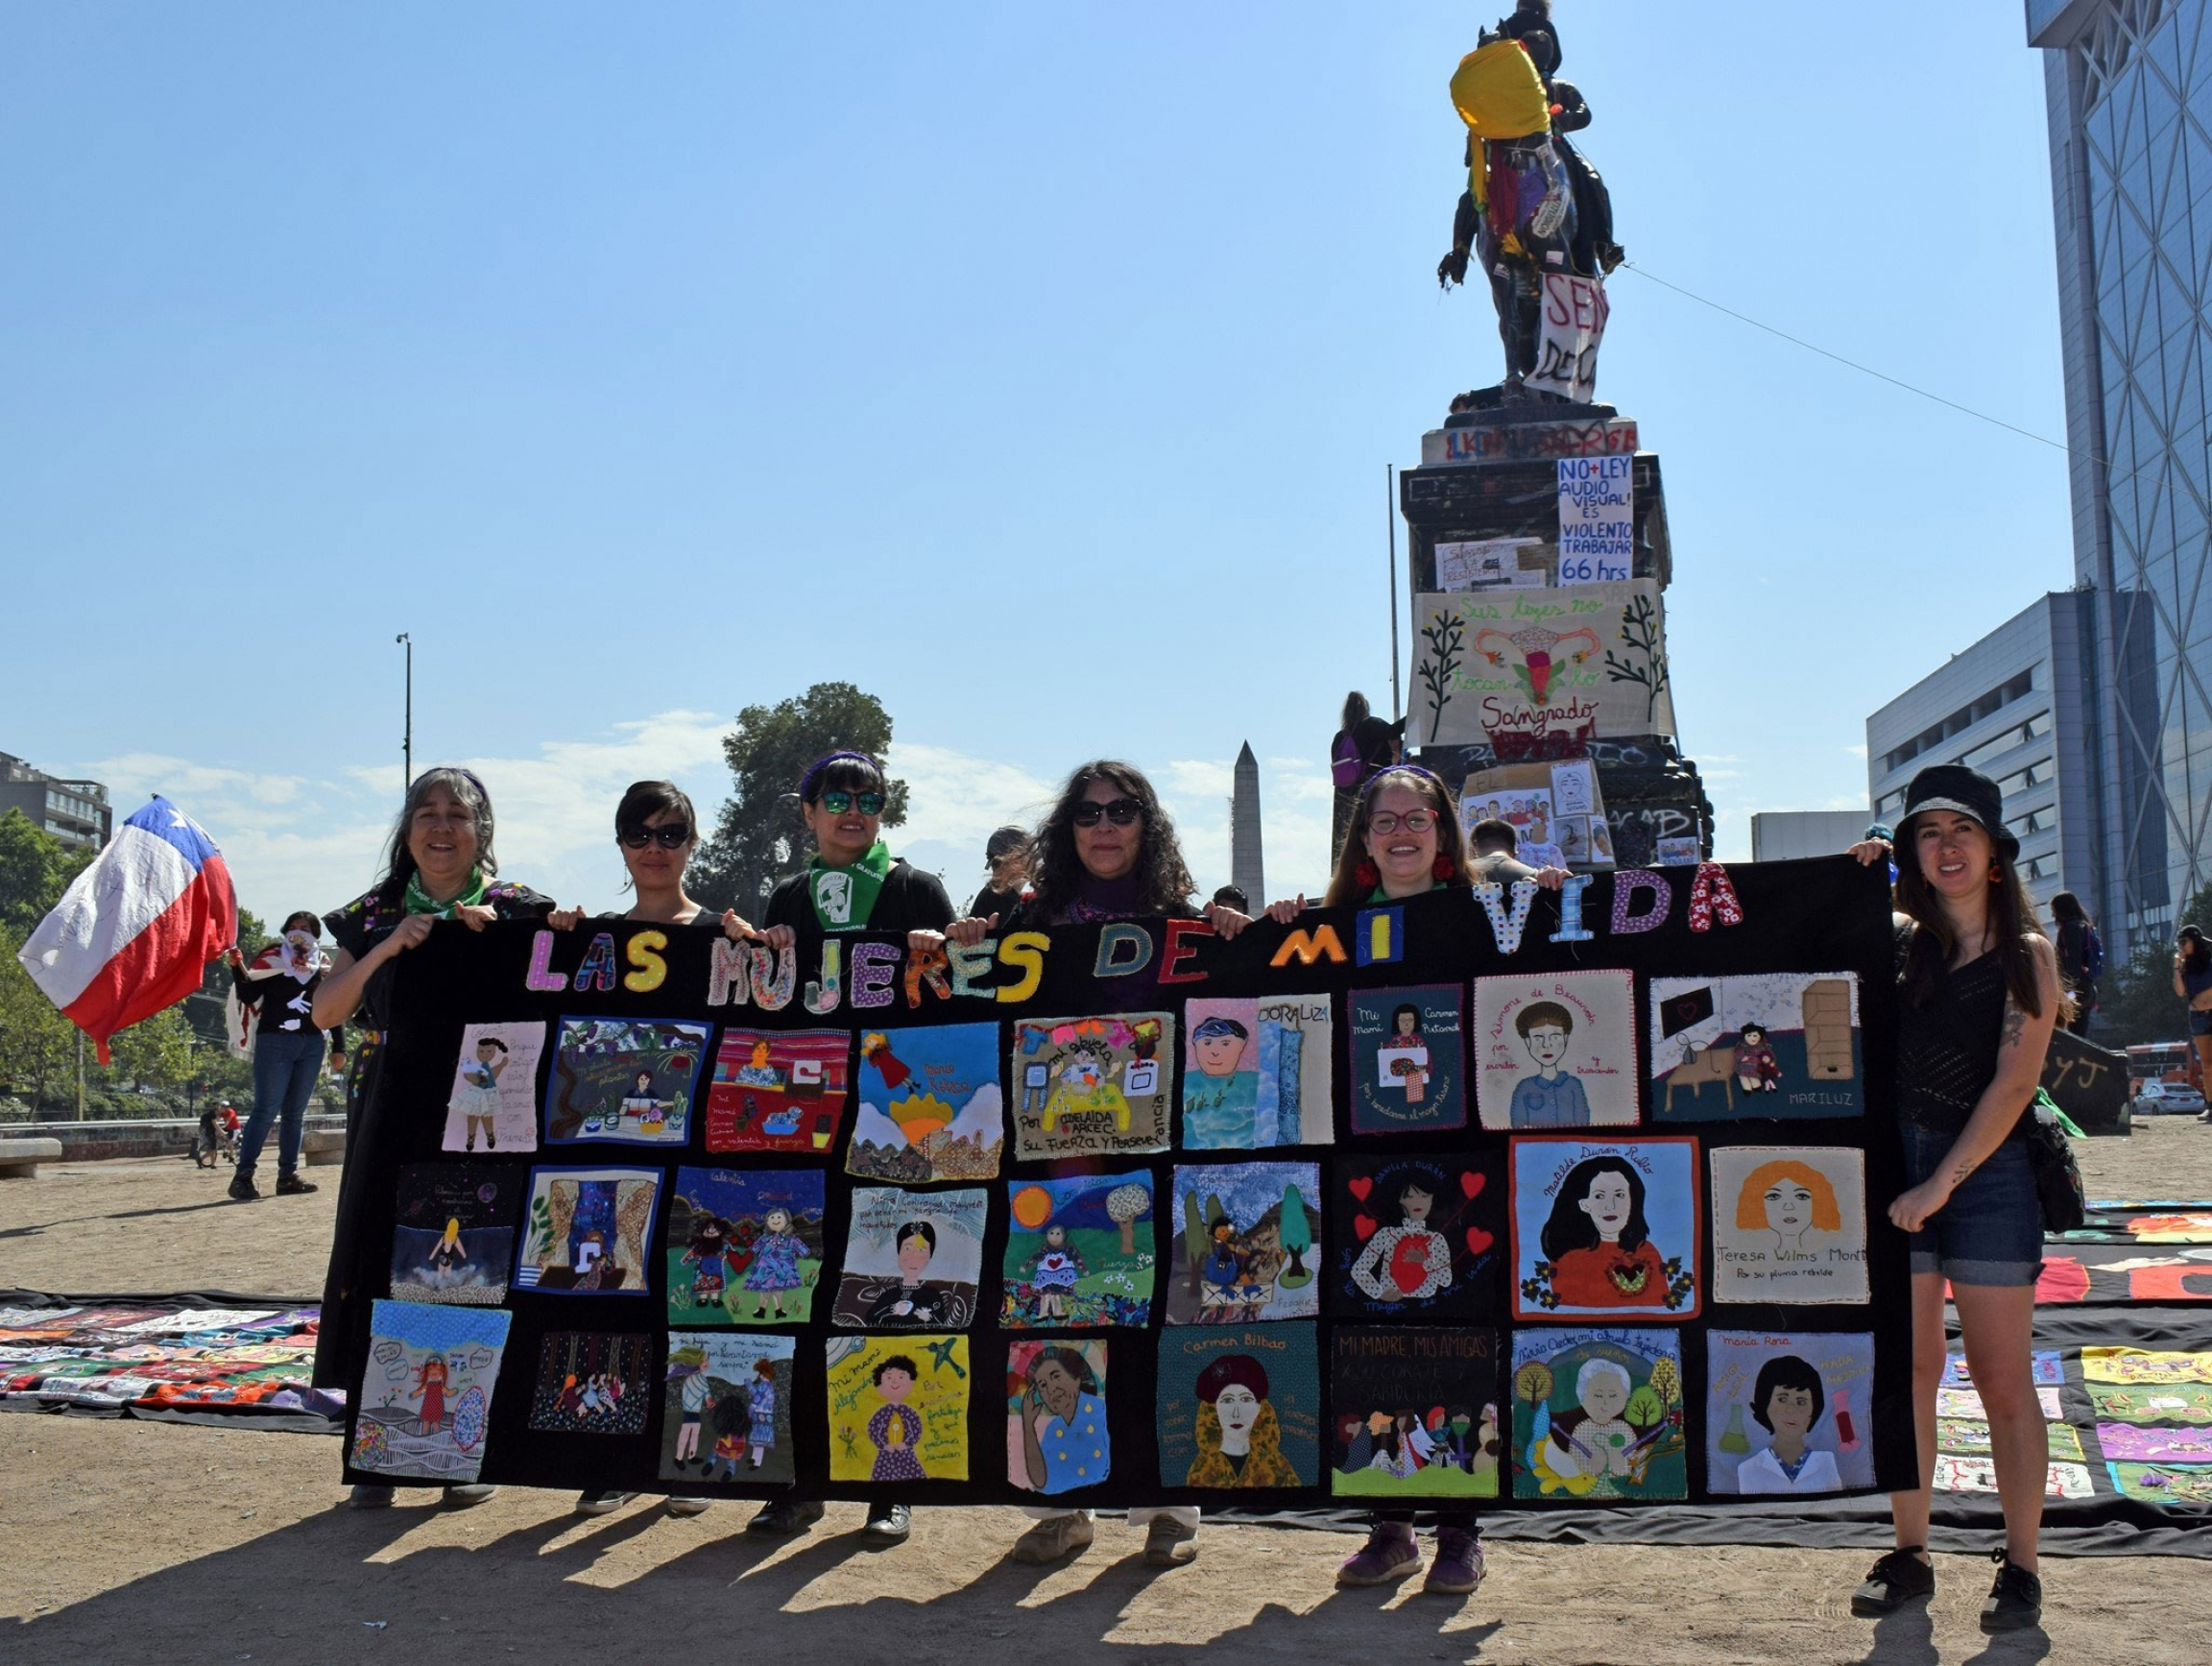 Several women are shown holding a tapestry with rows of embroidered blocks depicting slogans calling for legal abortion and an end to sexual assault.